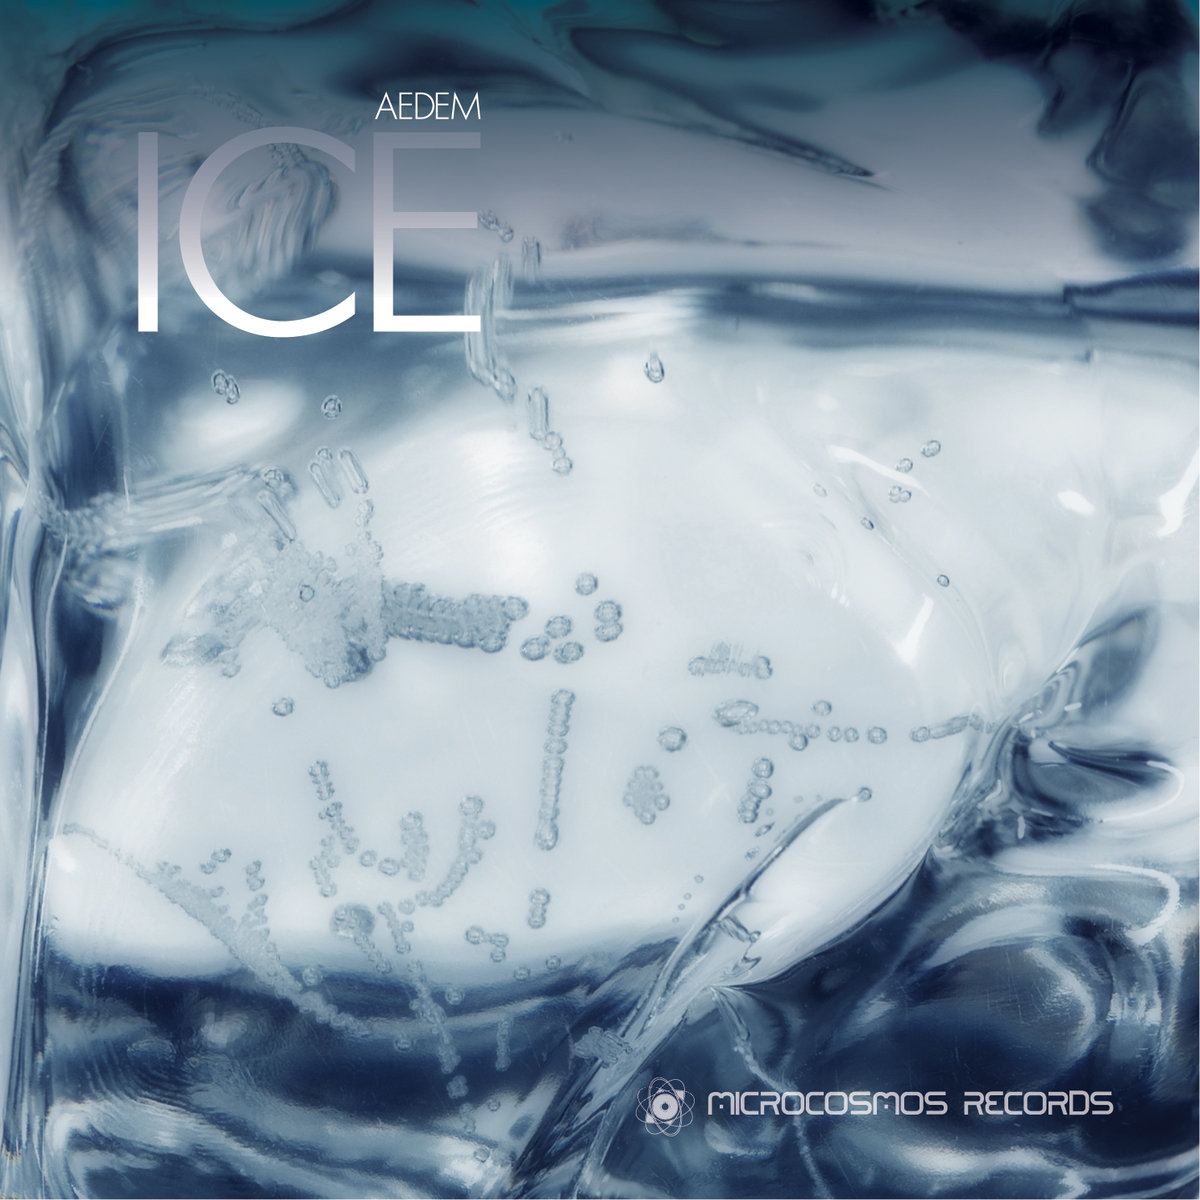 Aedem - Septagram @ 'Ice' album (ambient, chill-out)